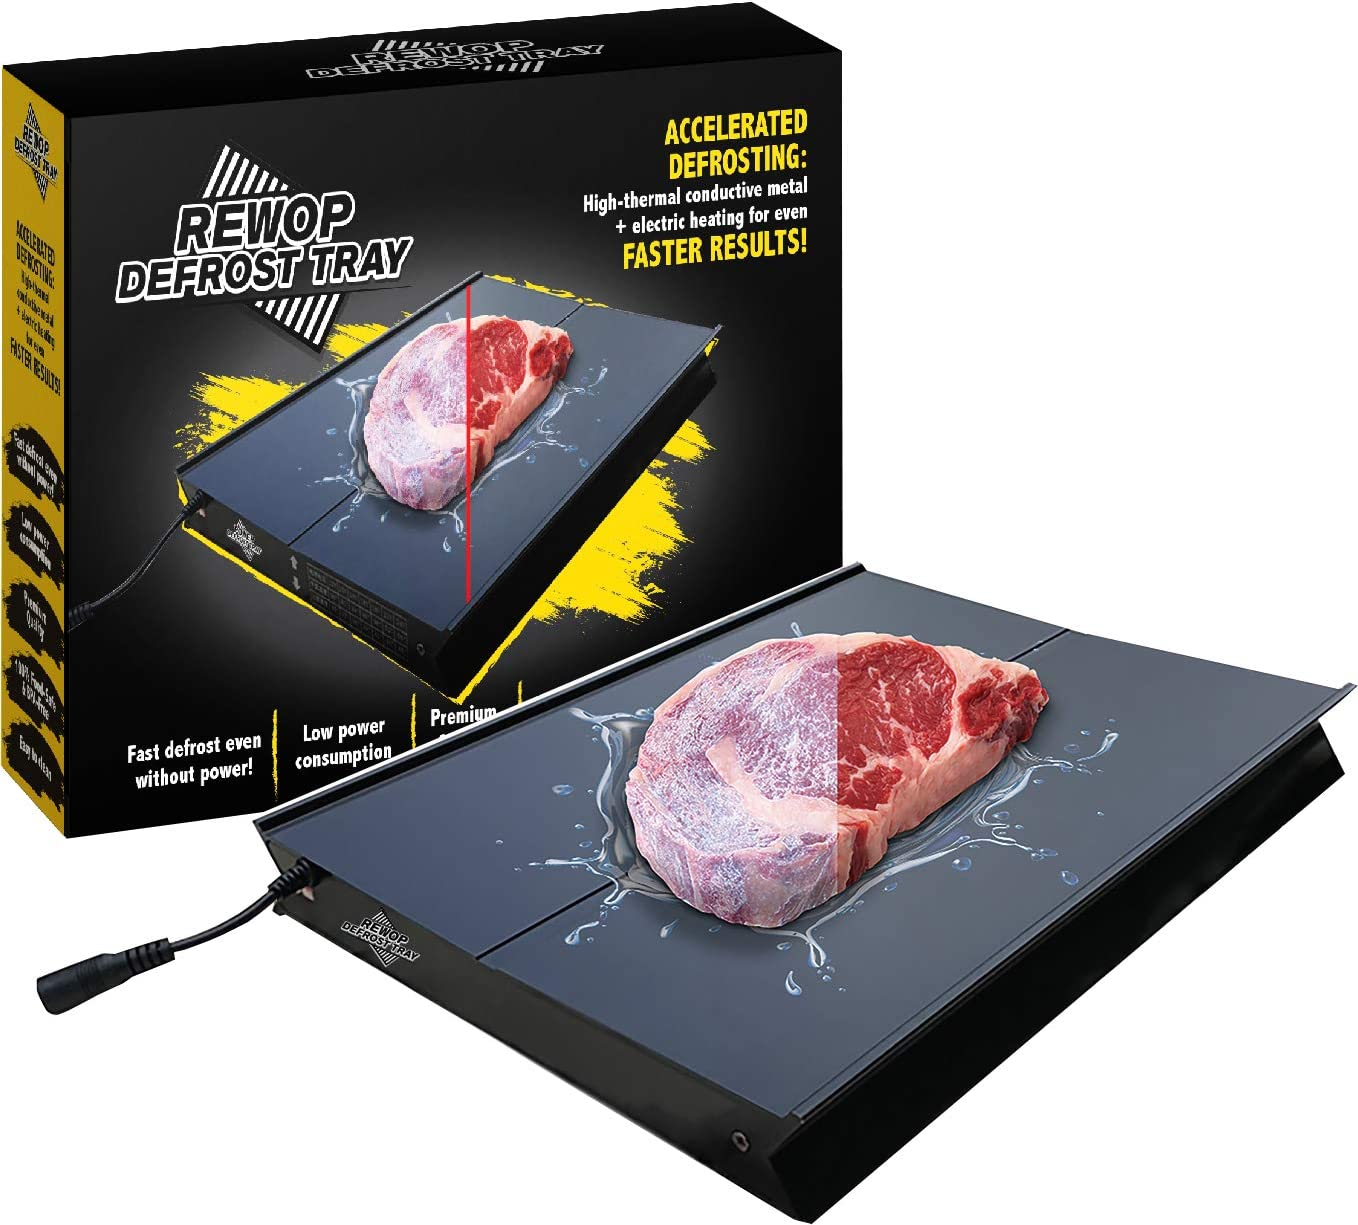 """Rewop Electric Defrosting Tray - Heating Tray For Defrosting Food, Rapid Meat Thawing Board, Thawing Plate, Low Power Consumption, Easy to Clean, Black, 12"""" x 9"""" Surface"""